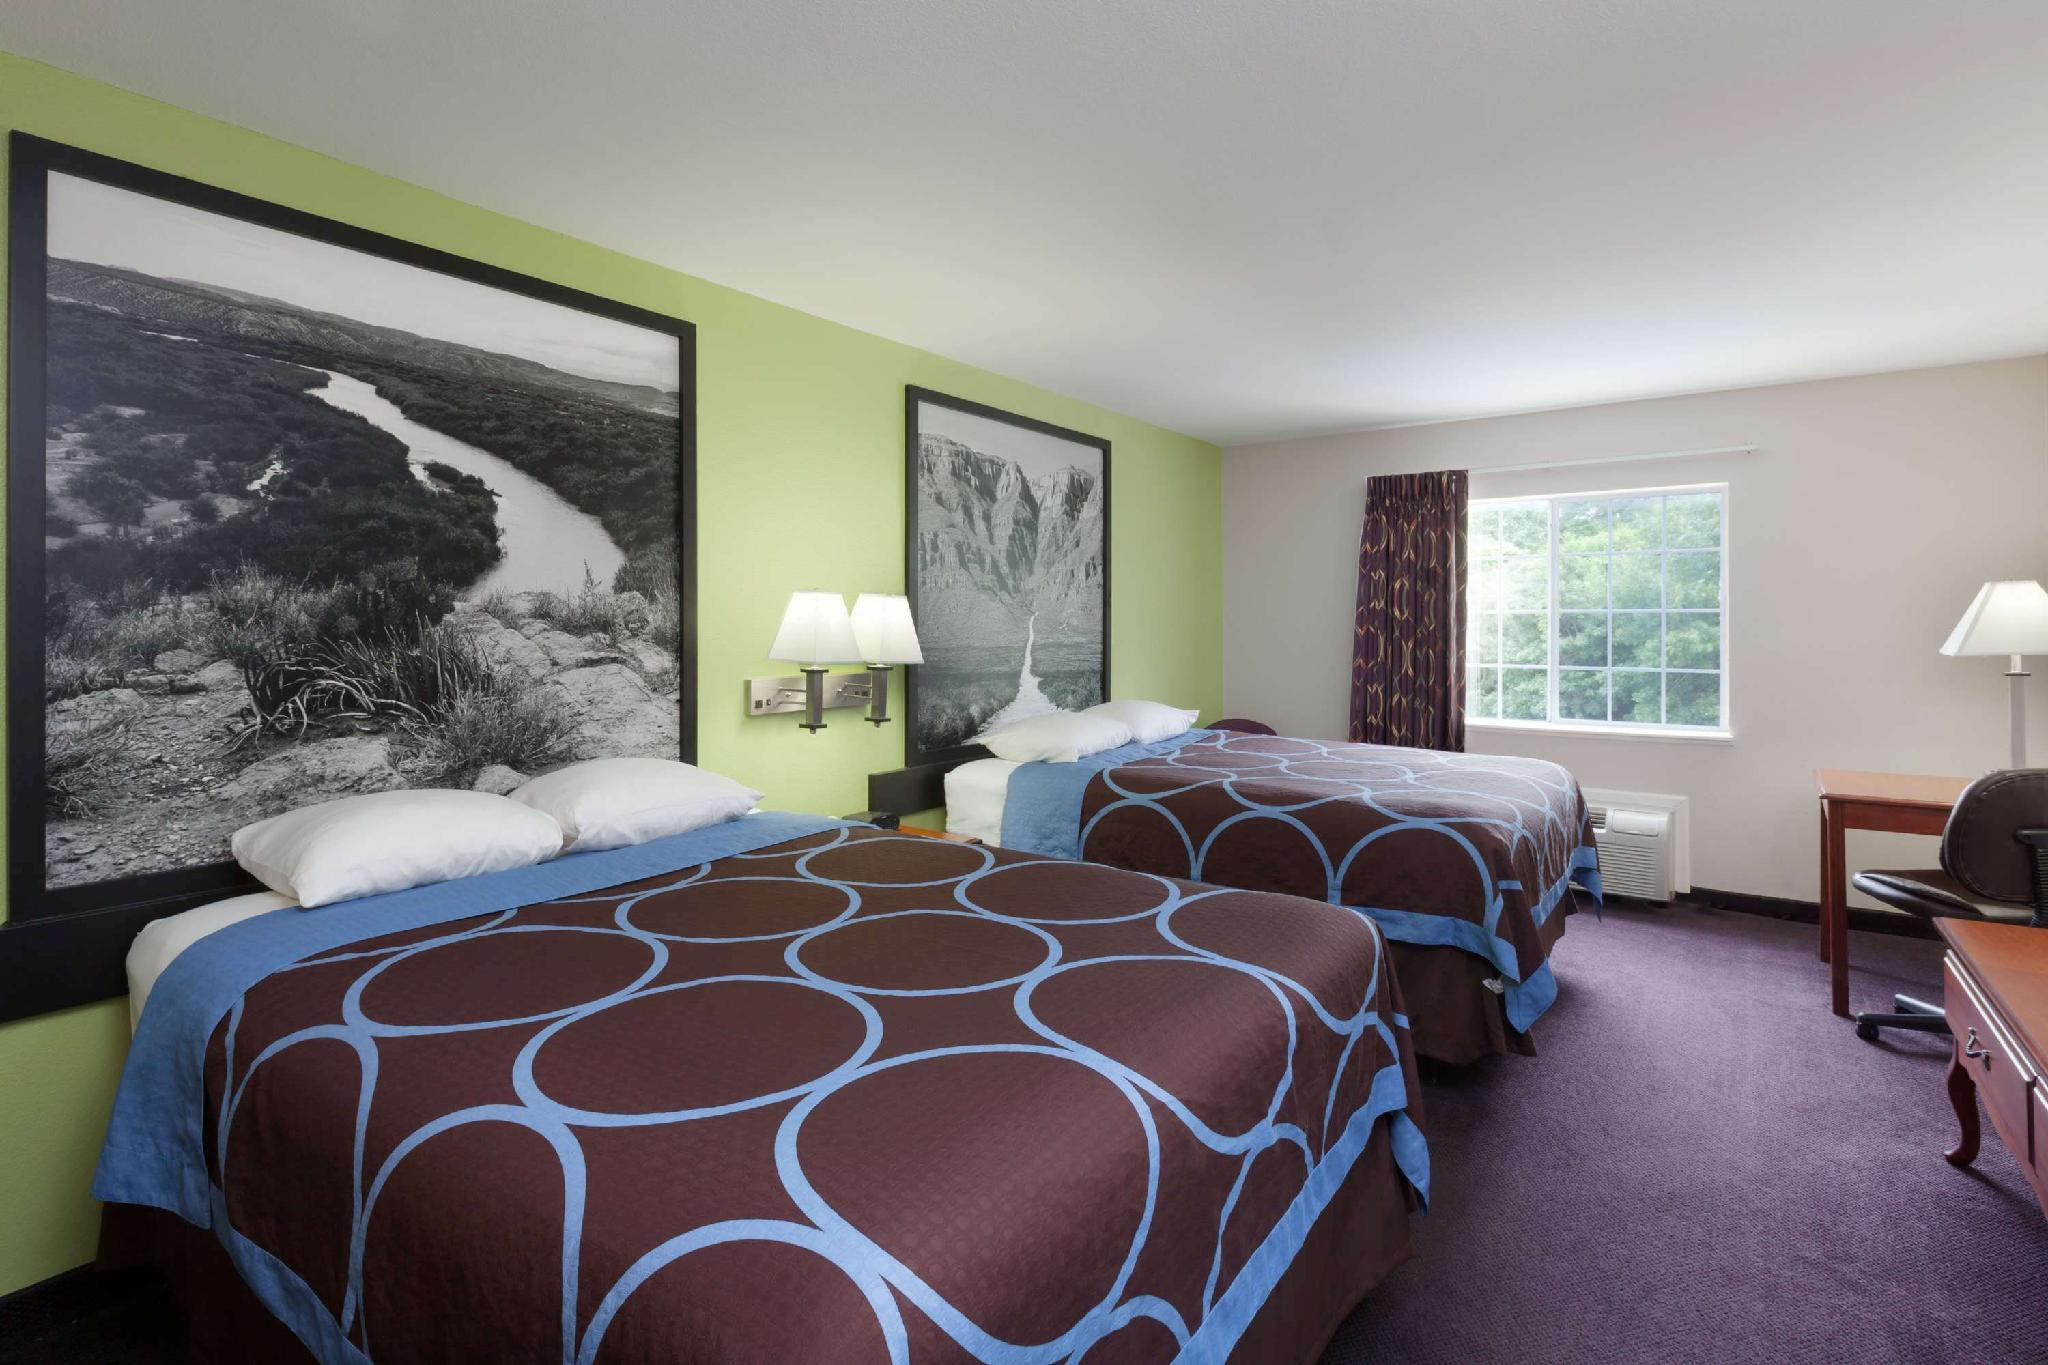 2 Queen Beds, Mobility Accessible Room, Non-Smoking